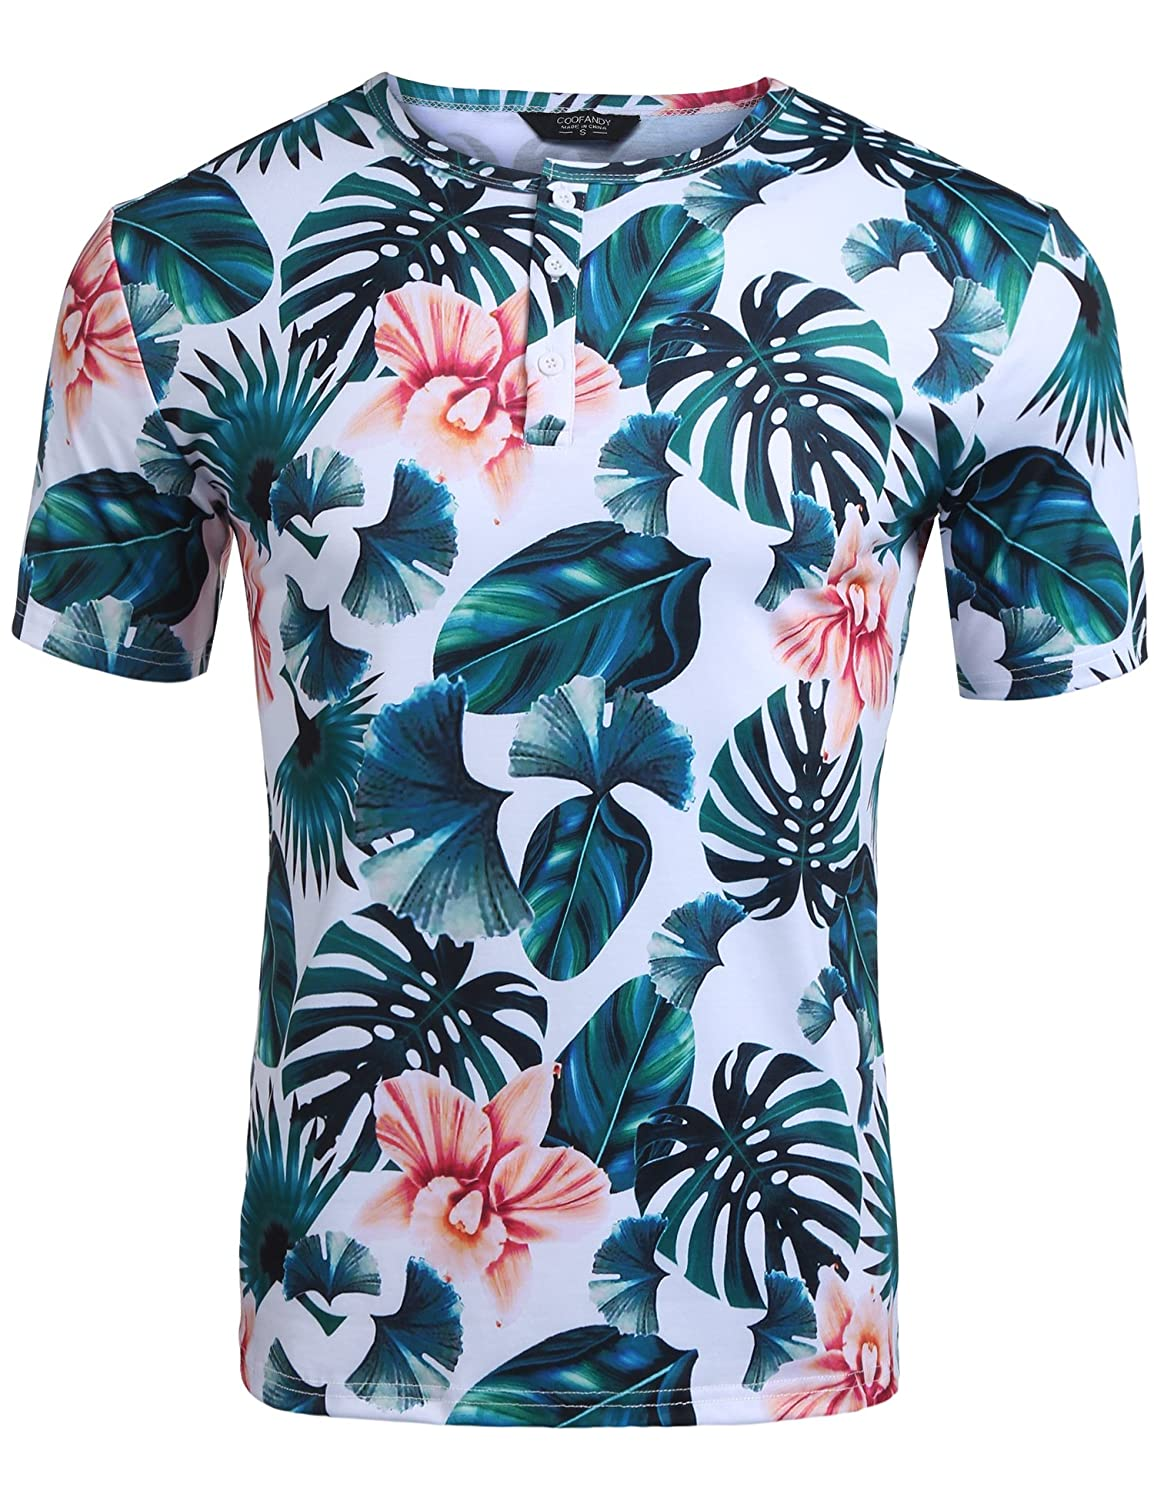 COOFANDY Men's Hipster Short Sleeve Tropical Floral Print Henley Tee Shirt